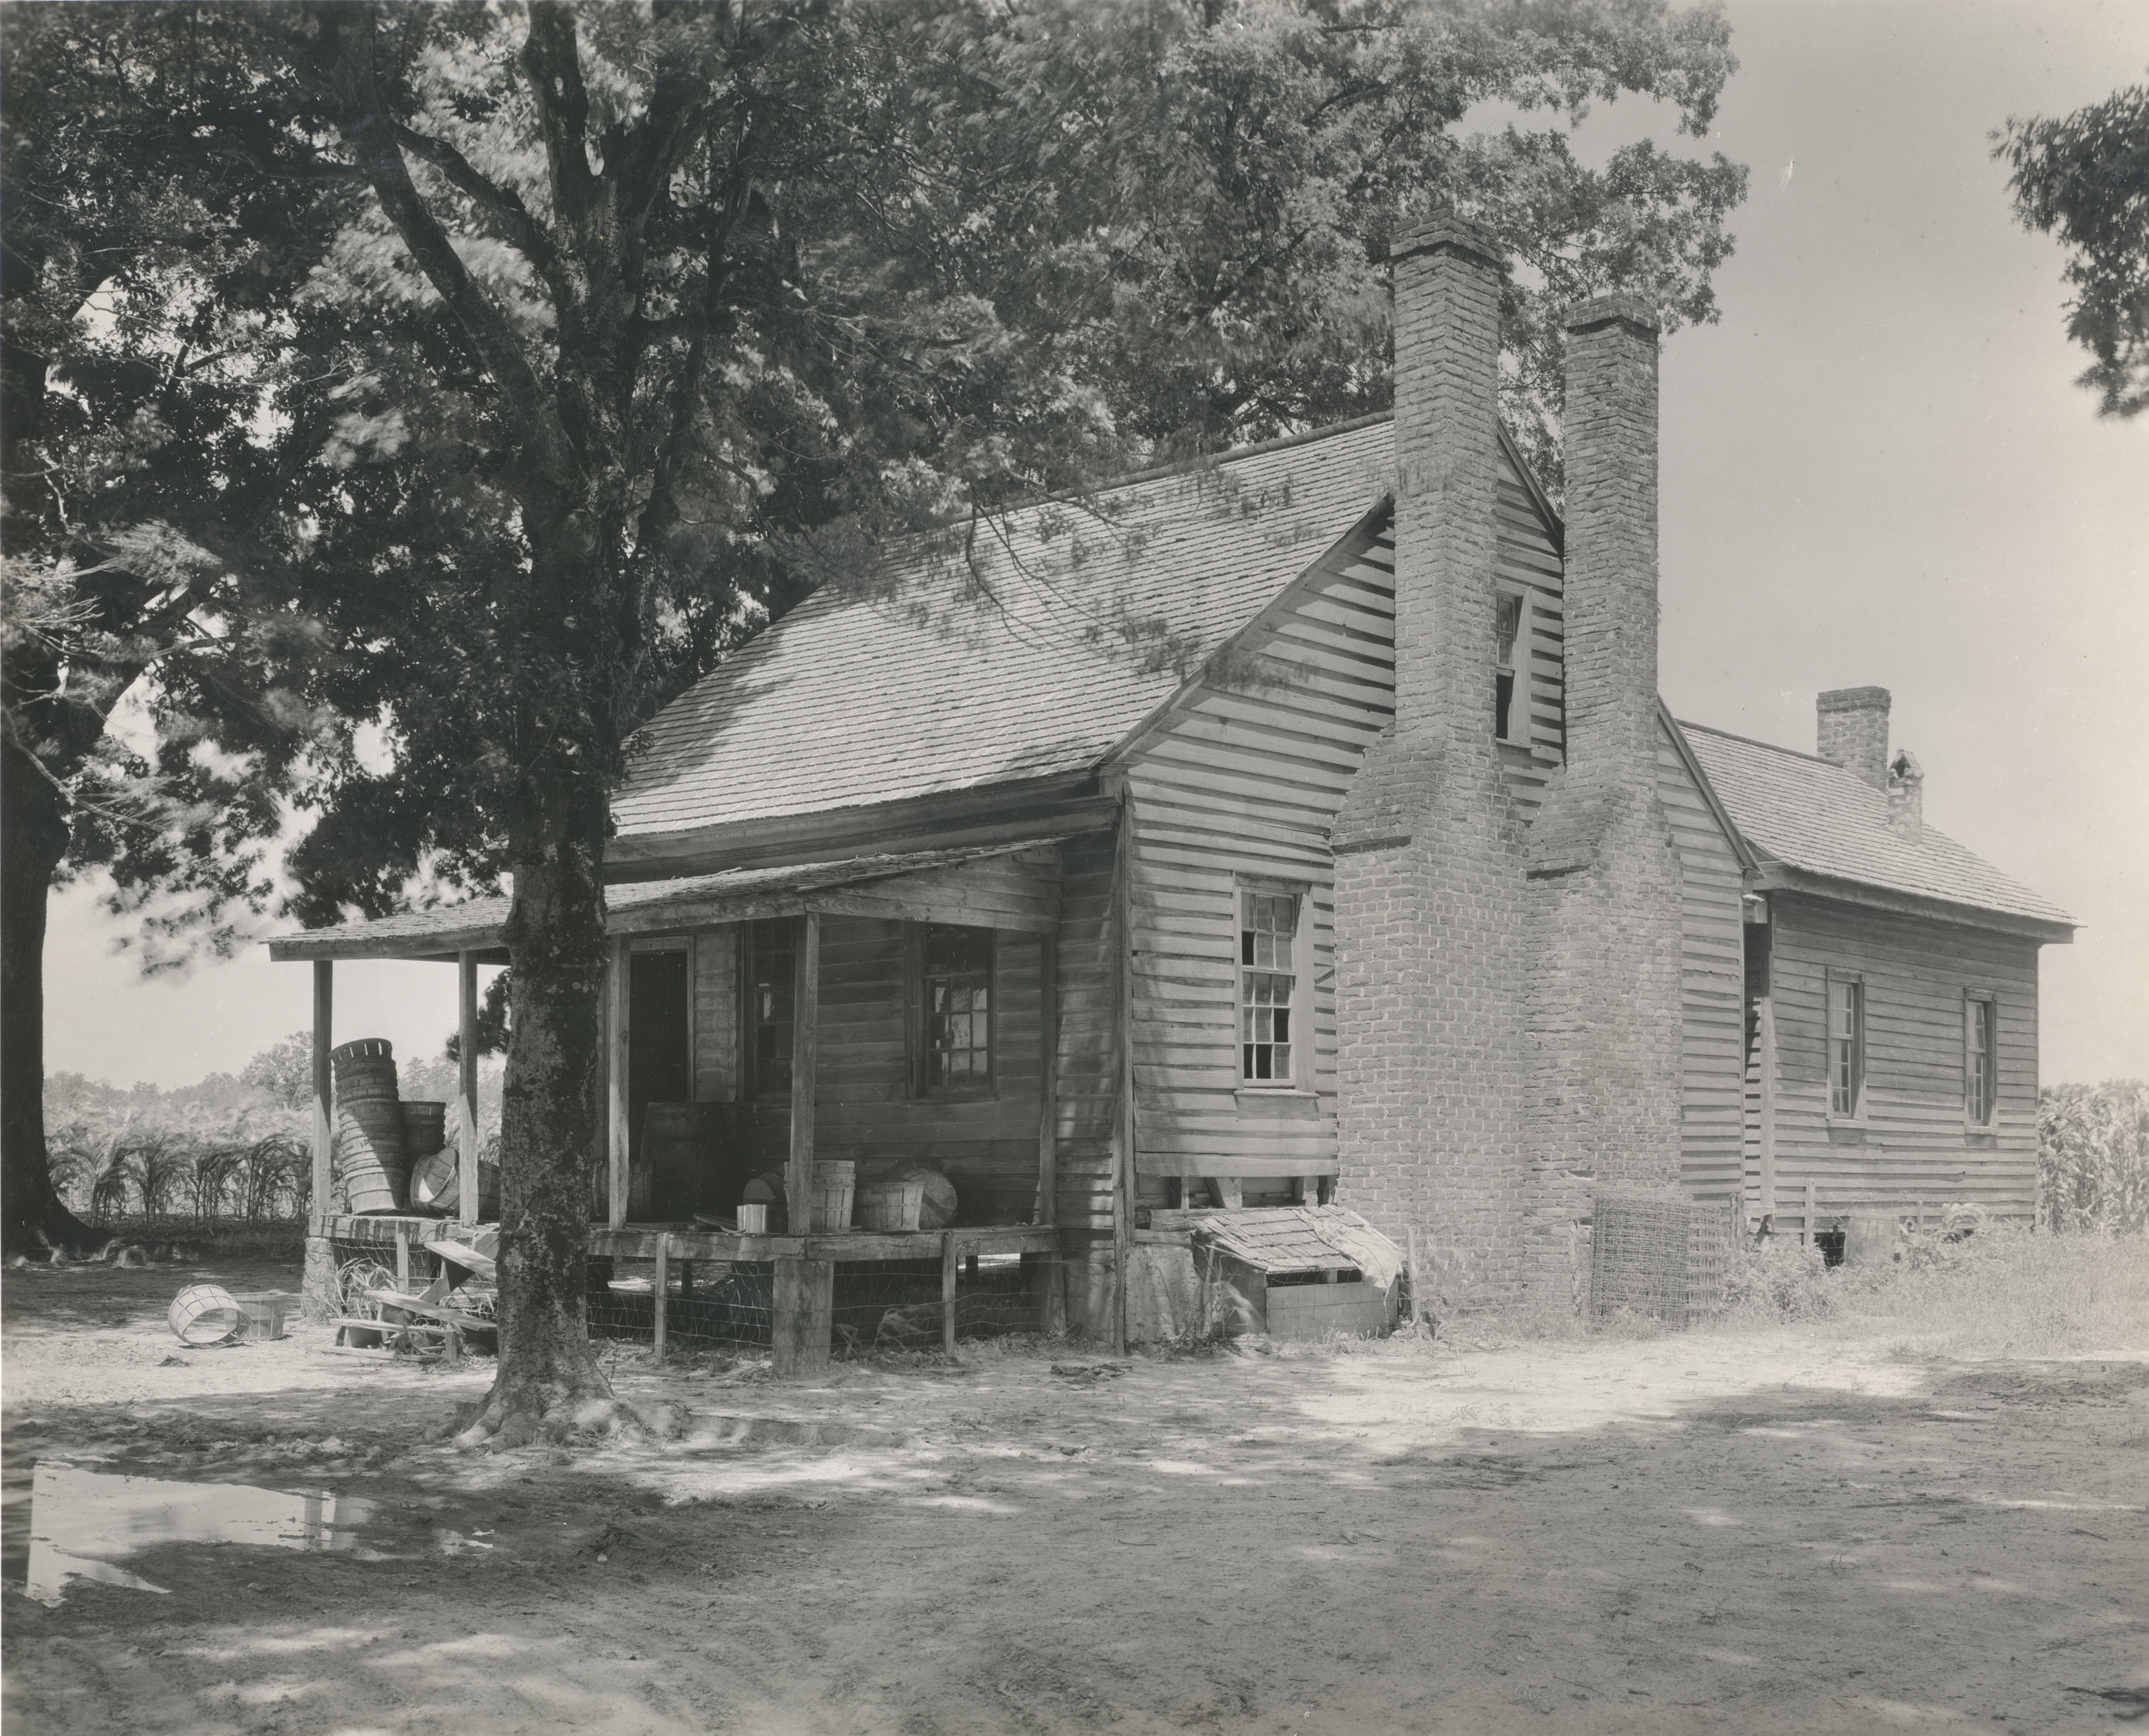 This is the earliest known photo of the Norfleet House, taken by Francis Benjamin Johnston in 1936. The photo is from the Library of Congress Carnegie Collection on Southern Architecture.